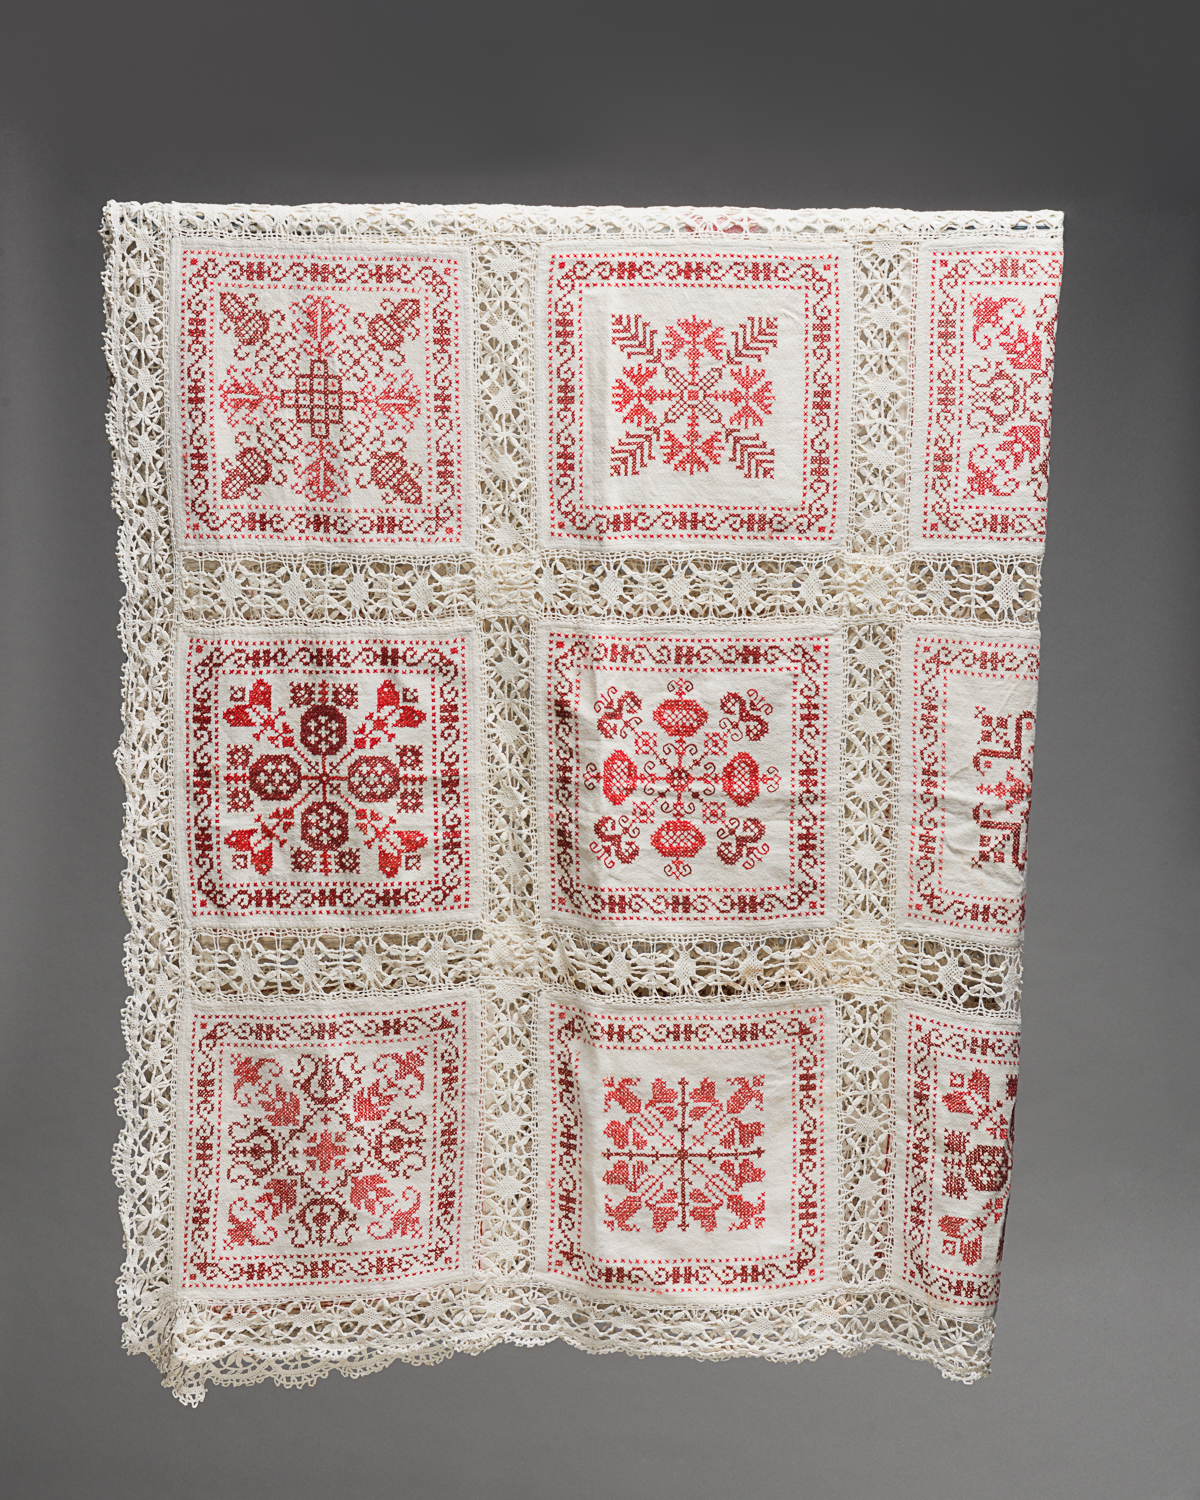 It is made of 30 linen squares embroidered in cross-stitch. (Photo: Peter Berra)